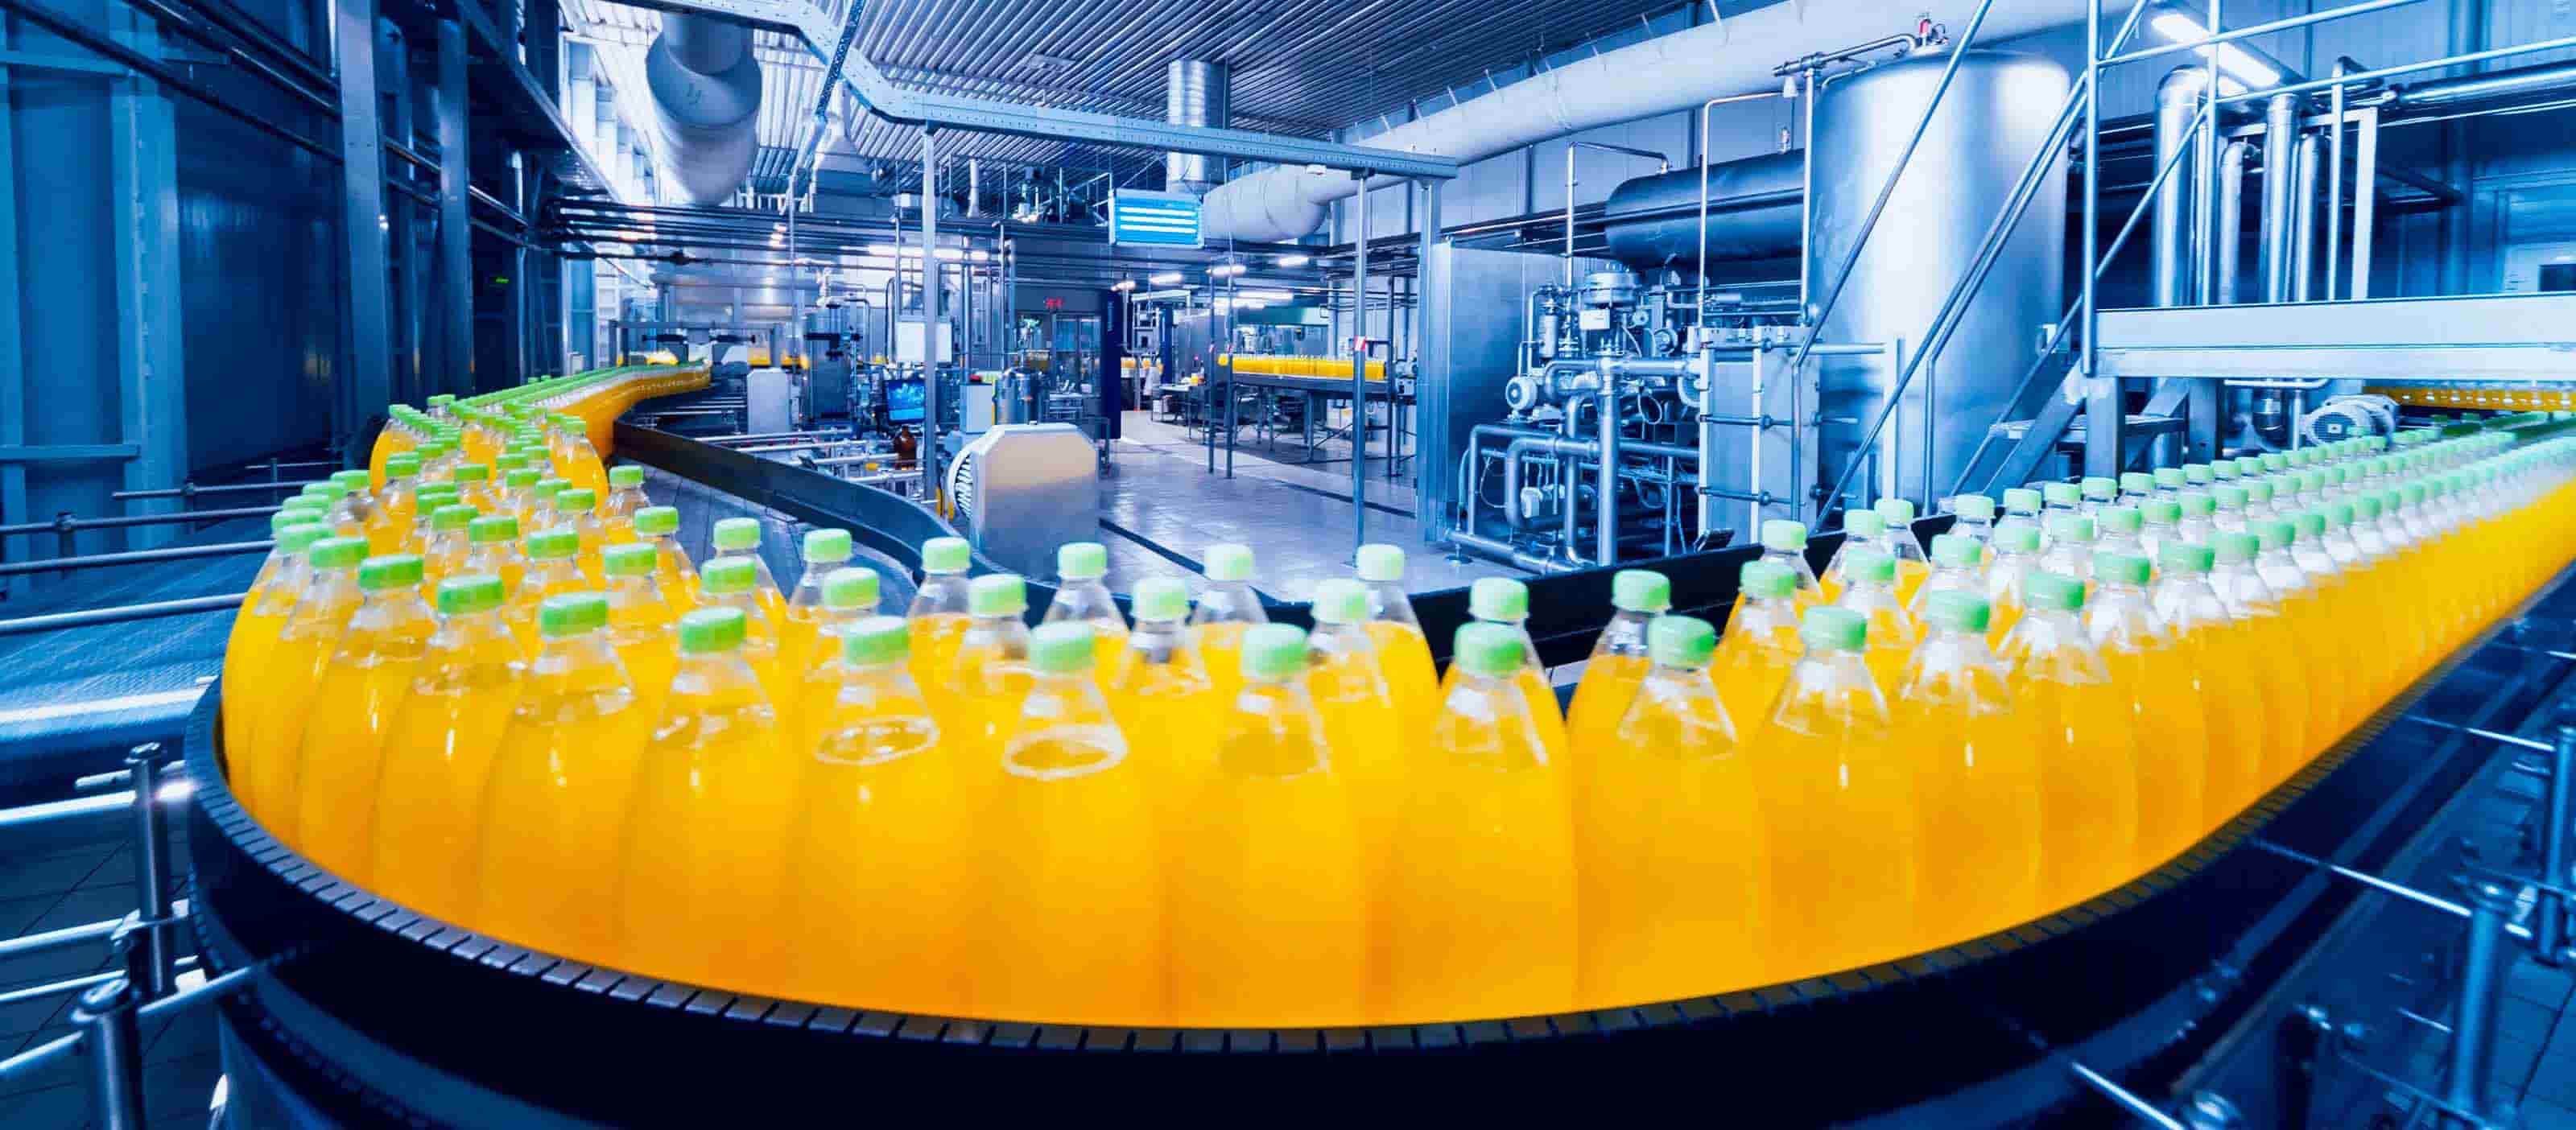 Food & Beverage manufacturing is aided by GE Digital MES software